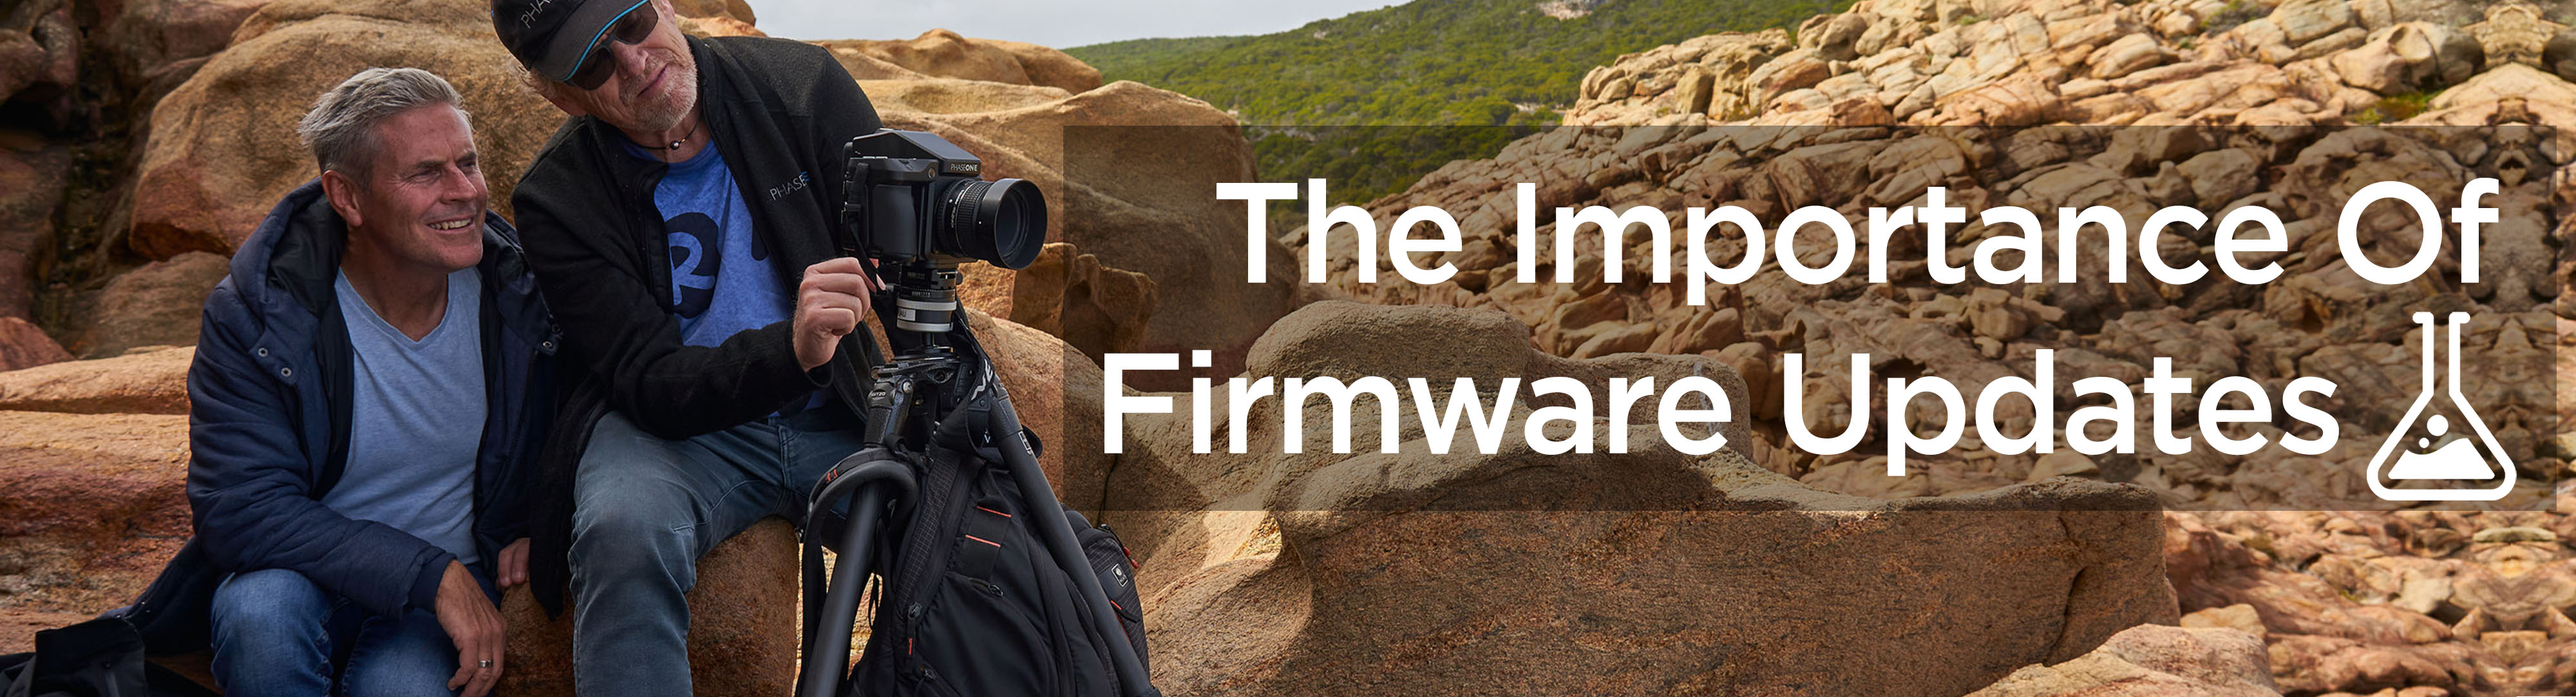 The Importance Of Firmware Updates For Your Phase One IQ4, XT and XF